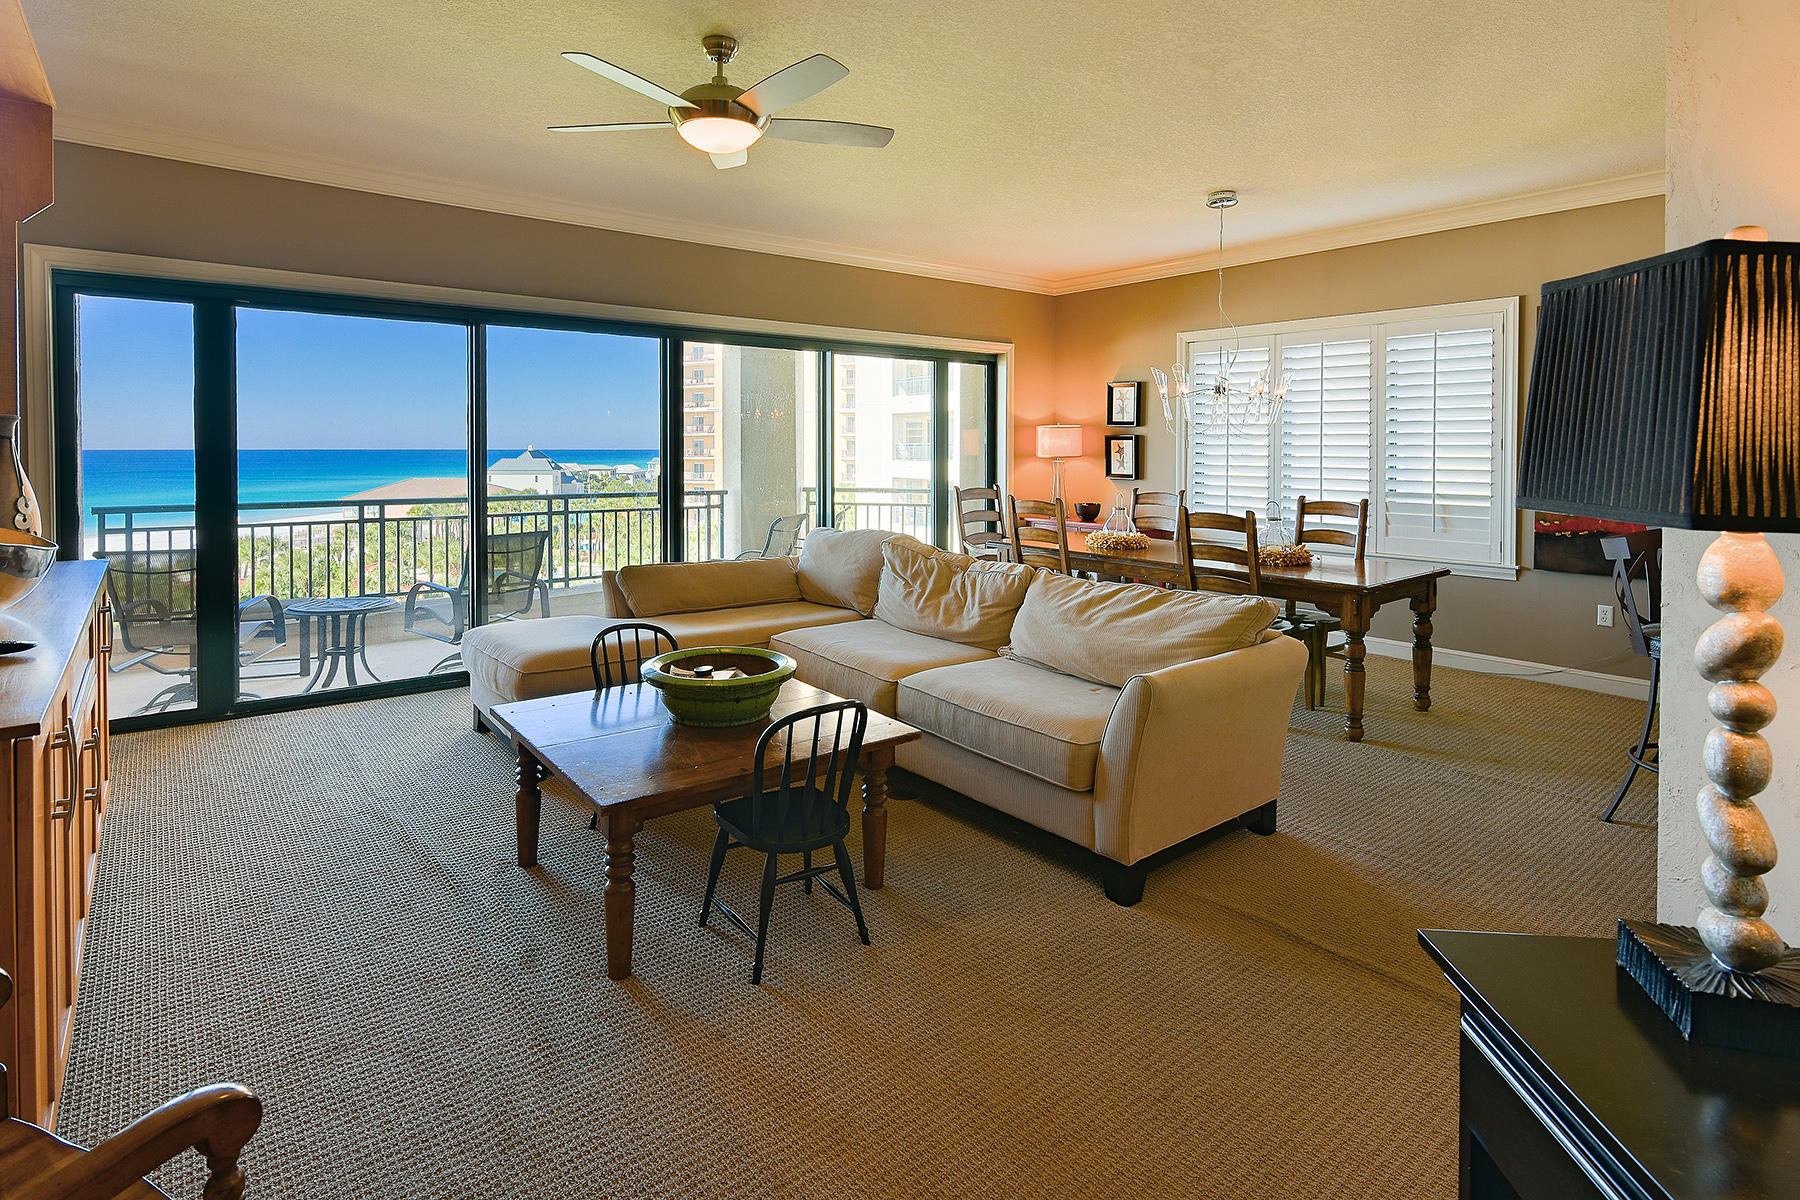 Condominium for Sale at UNOBSTRUCTED WATERFRONT SUNSETS 4518 Southwinds Dr 4518 Miramar Beach, Florida 32550 United States